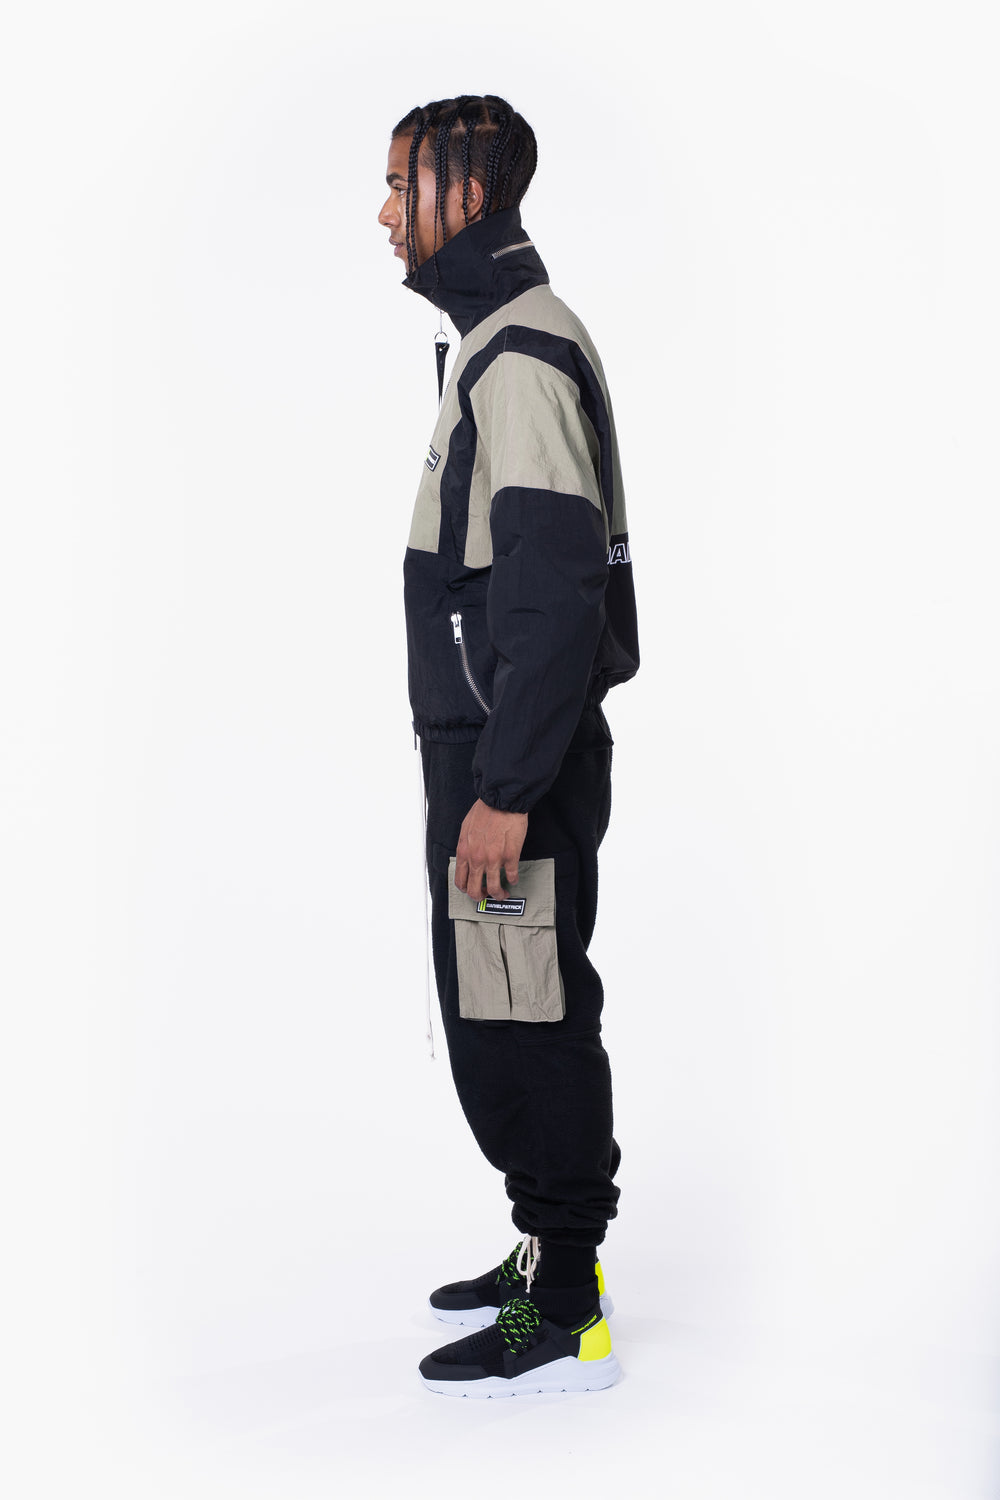 2020 track jacket / smog grey + black